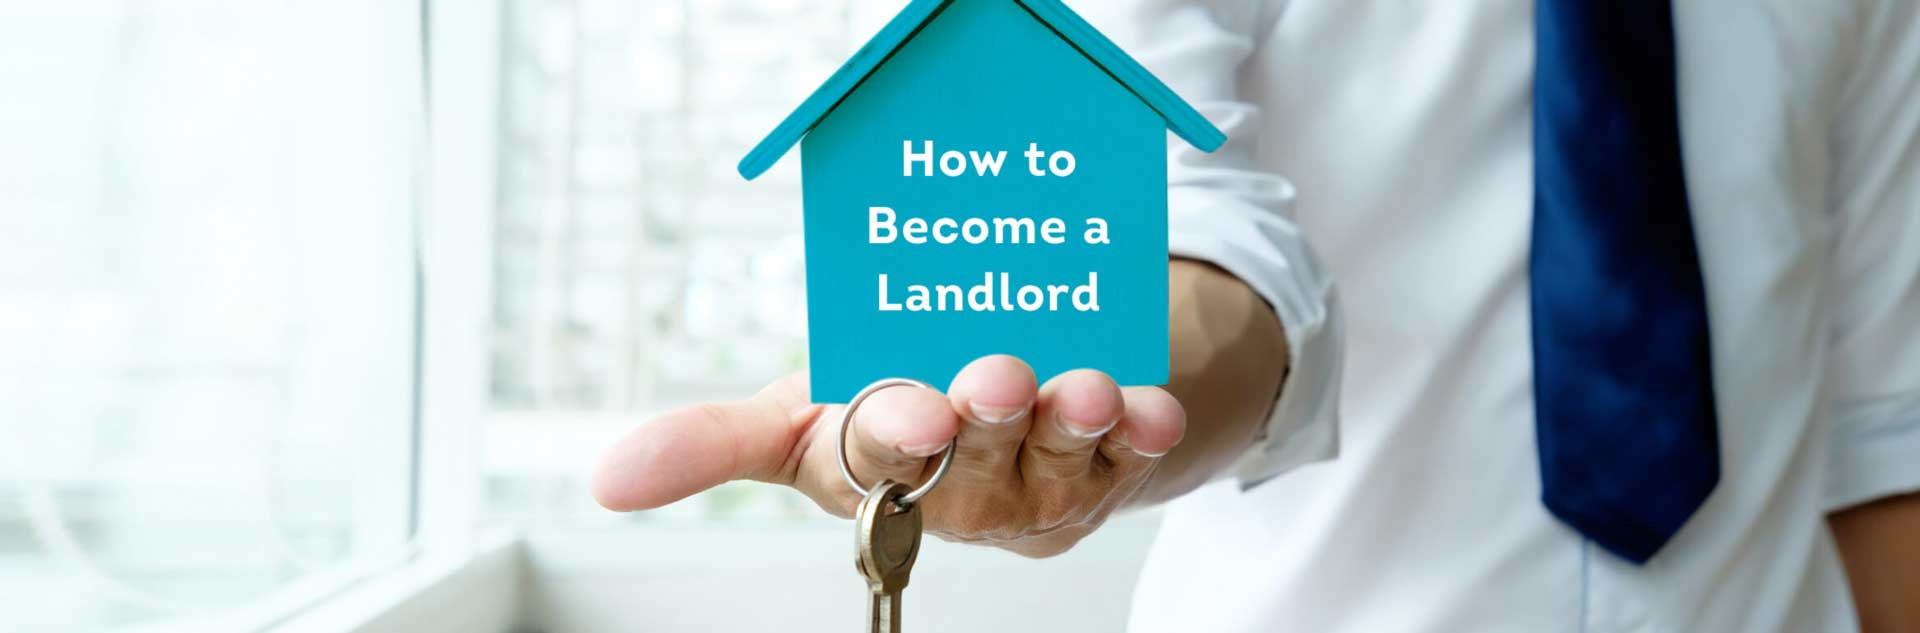 How to Become A Landlord: 23 Things to Consider | SmartMove